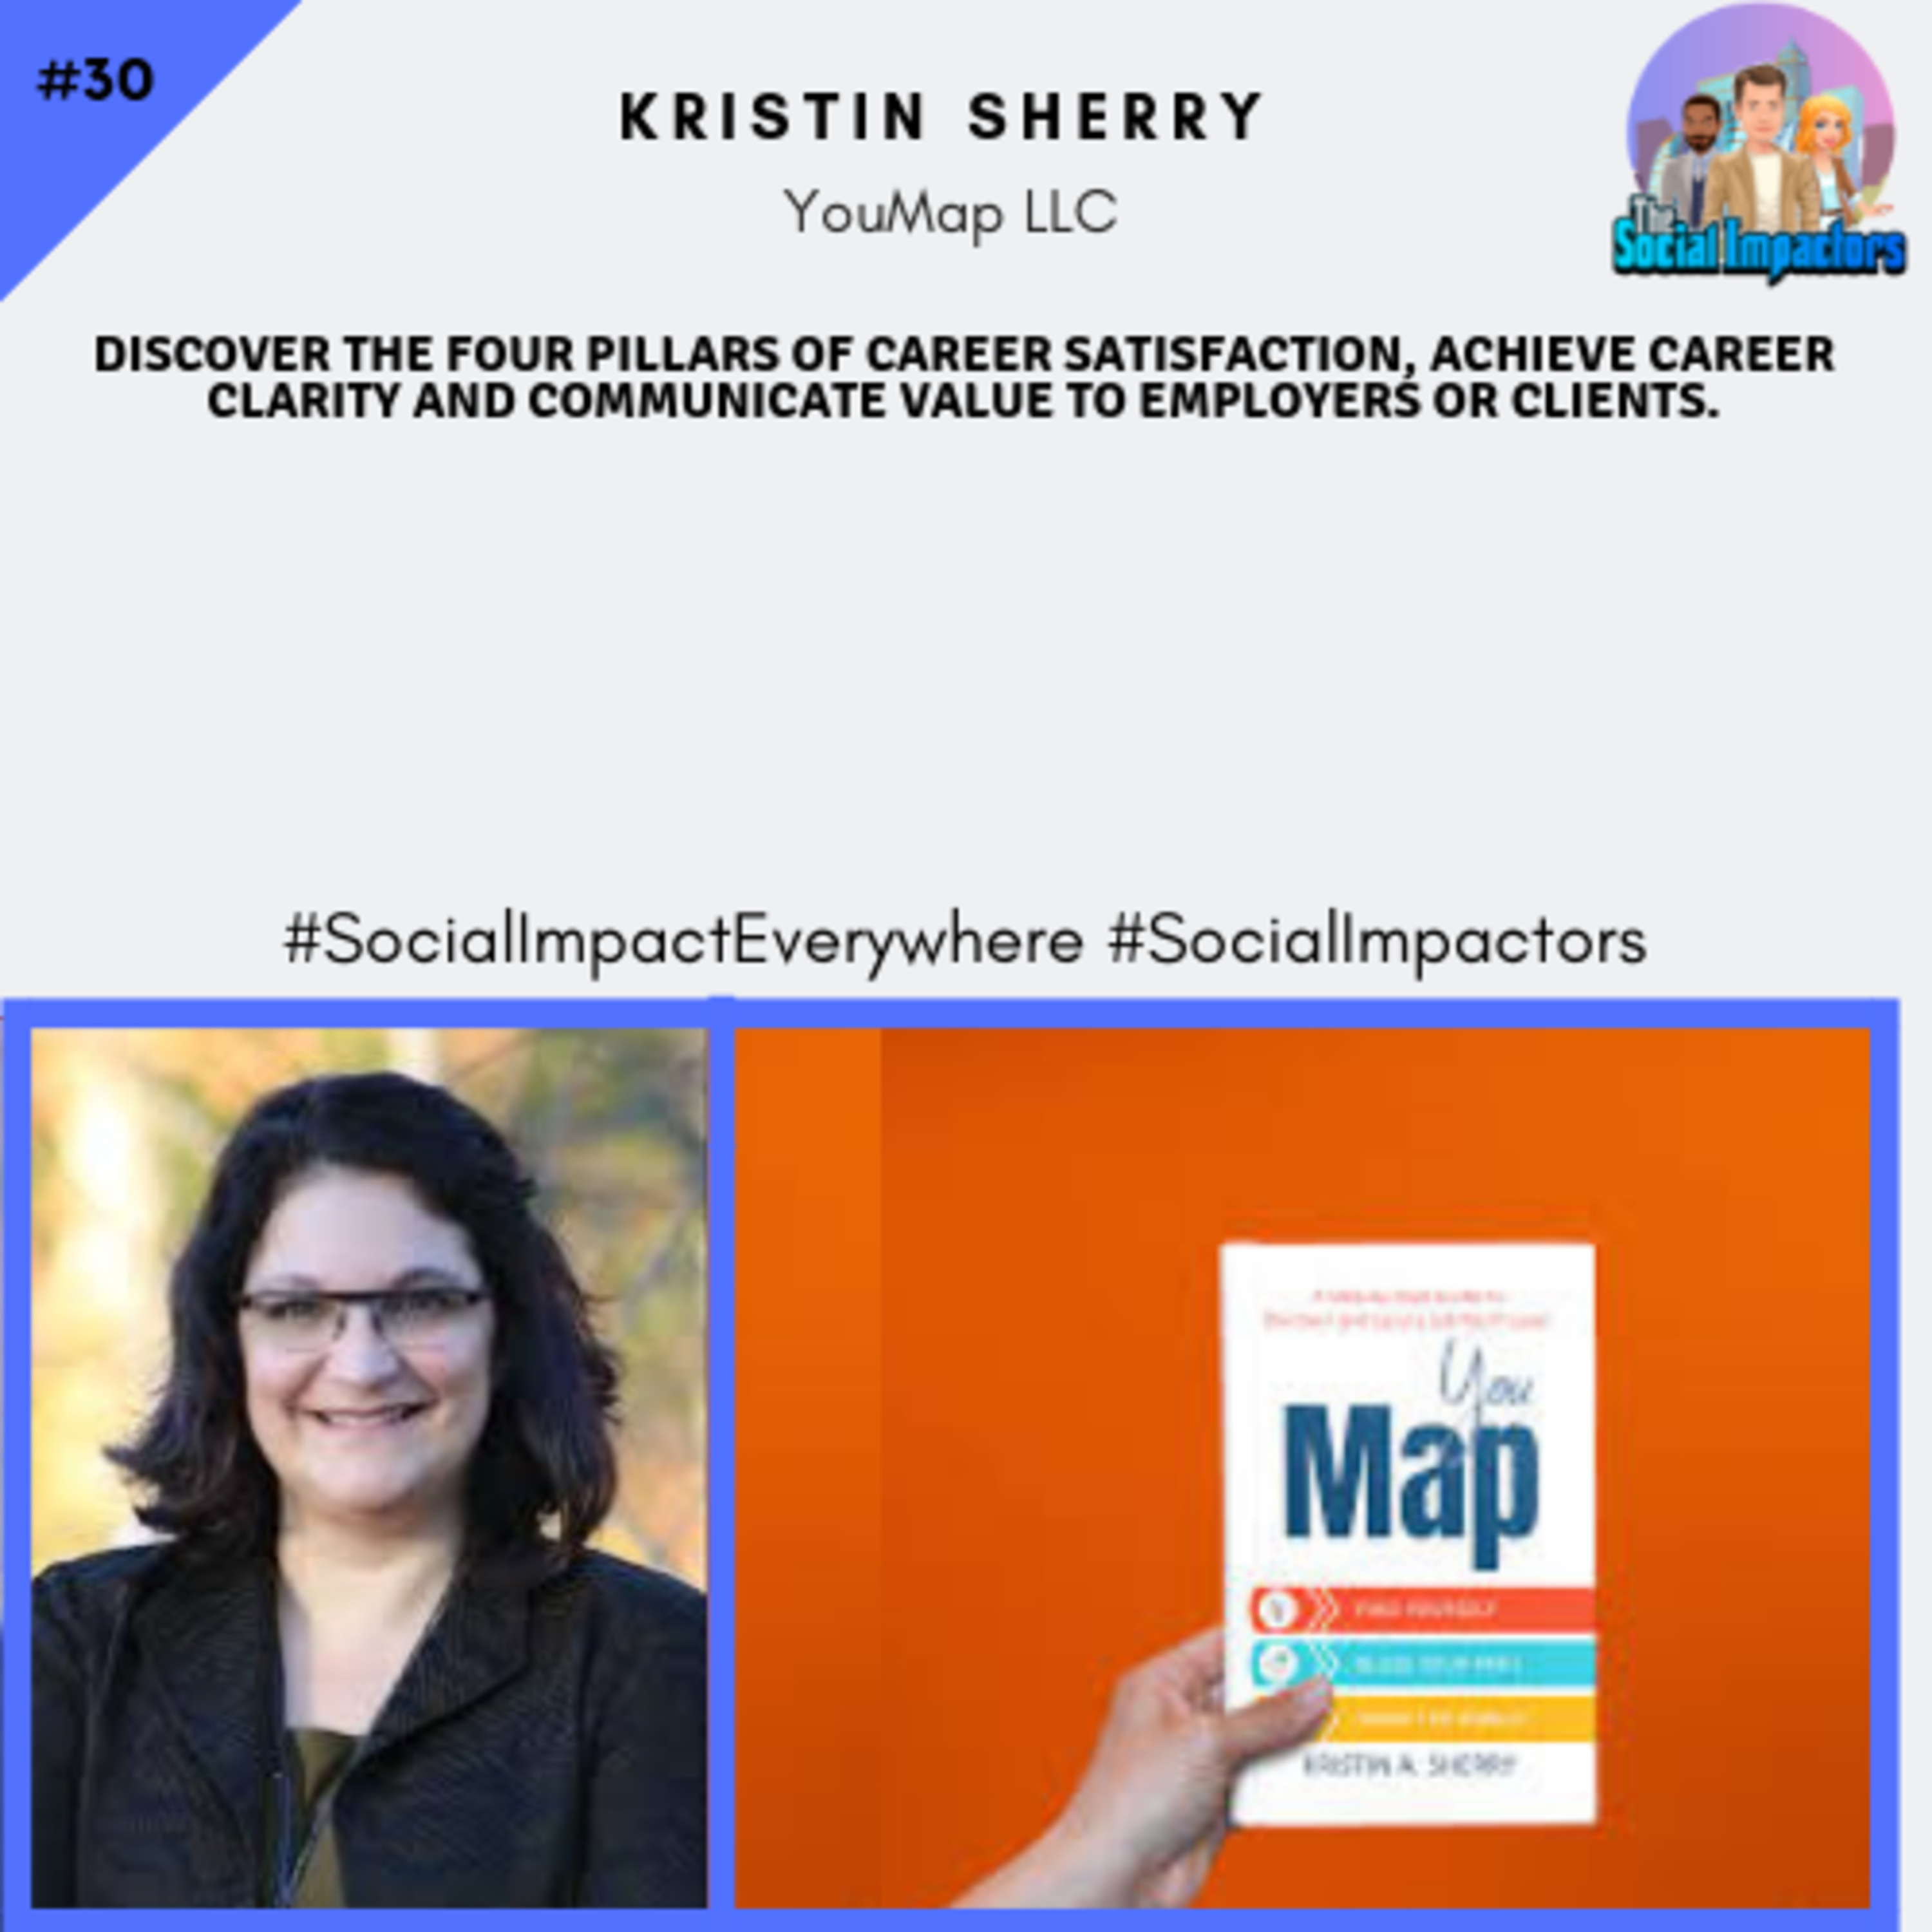 The journey of YouMap, drinking her own Kool-Aid & re-igniting purpose (Kristin Sherry of YouMap)